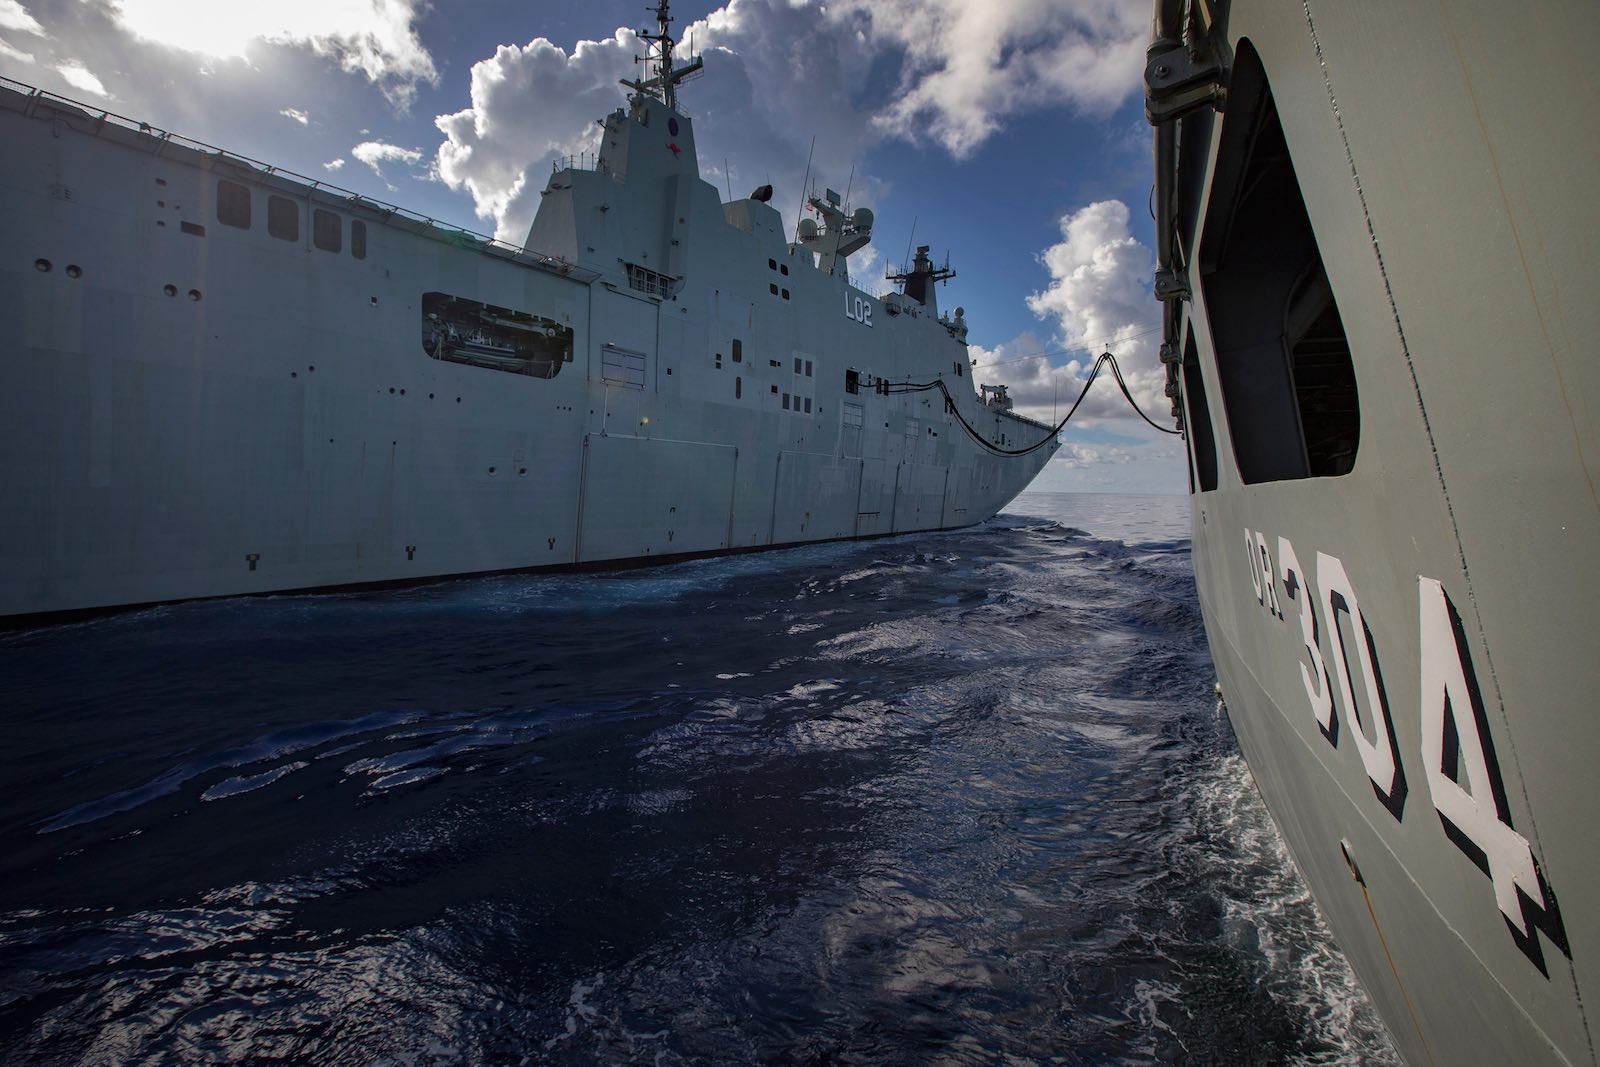 HMAS Canberra connects alongside HMAS Success during replenishment at sea (Photo: Defence Department)